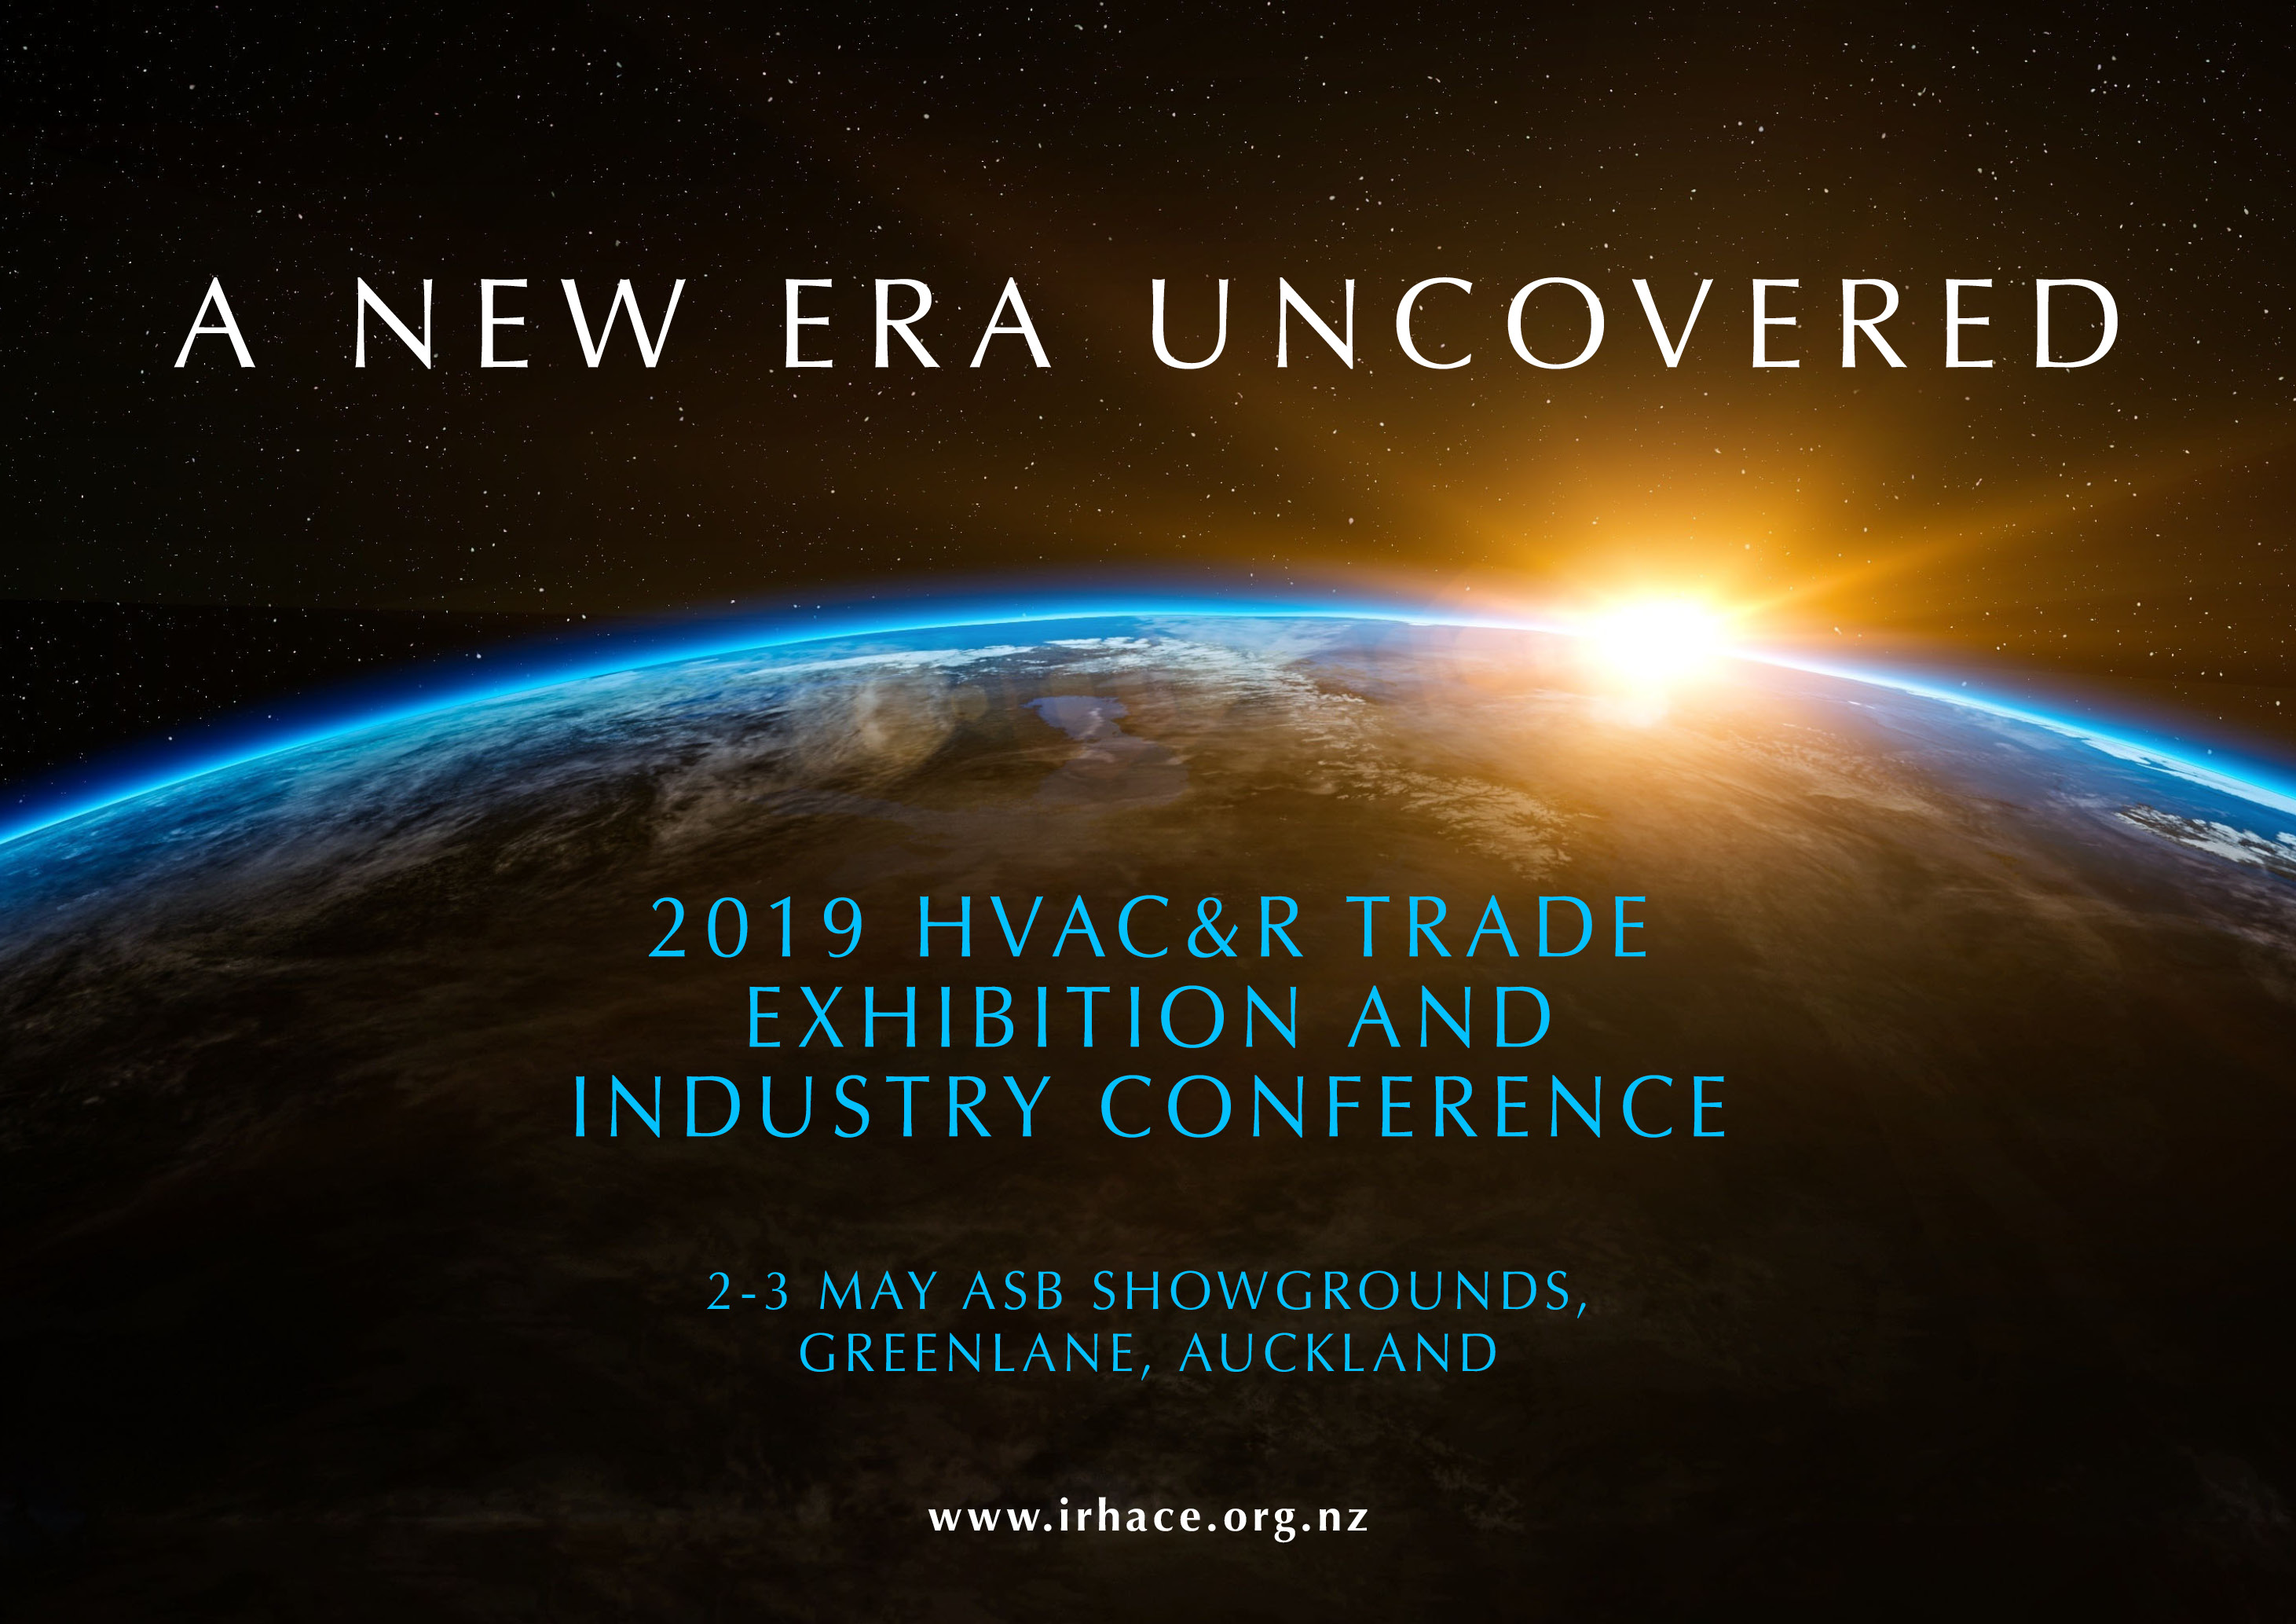 Exhibition Stands Nz : Hvac r trade exhibition and industry conference irhace new